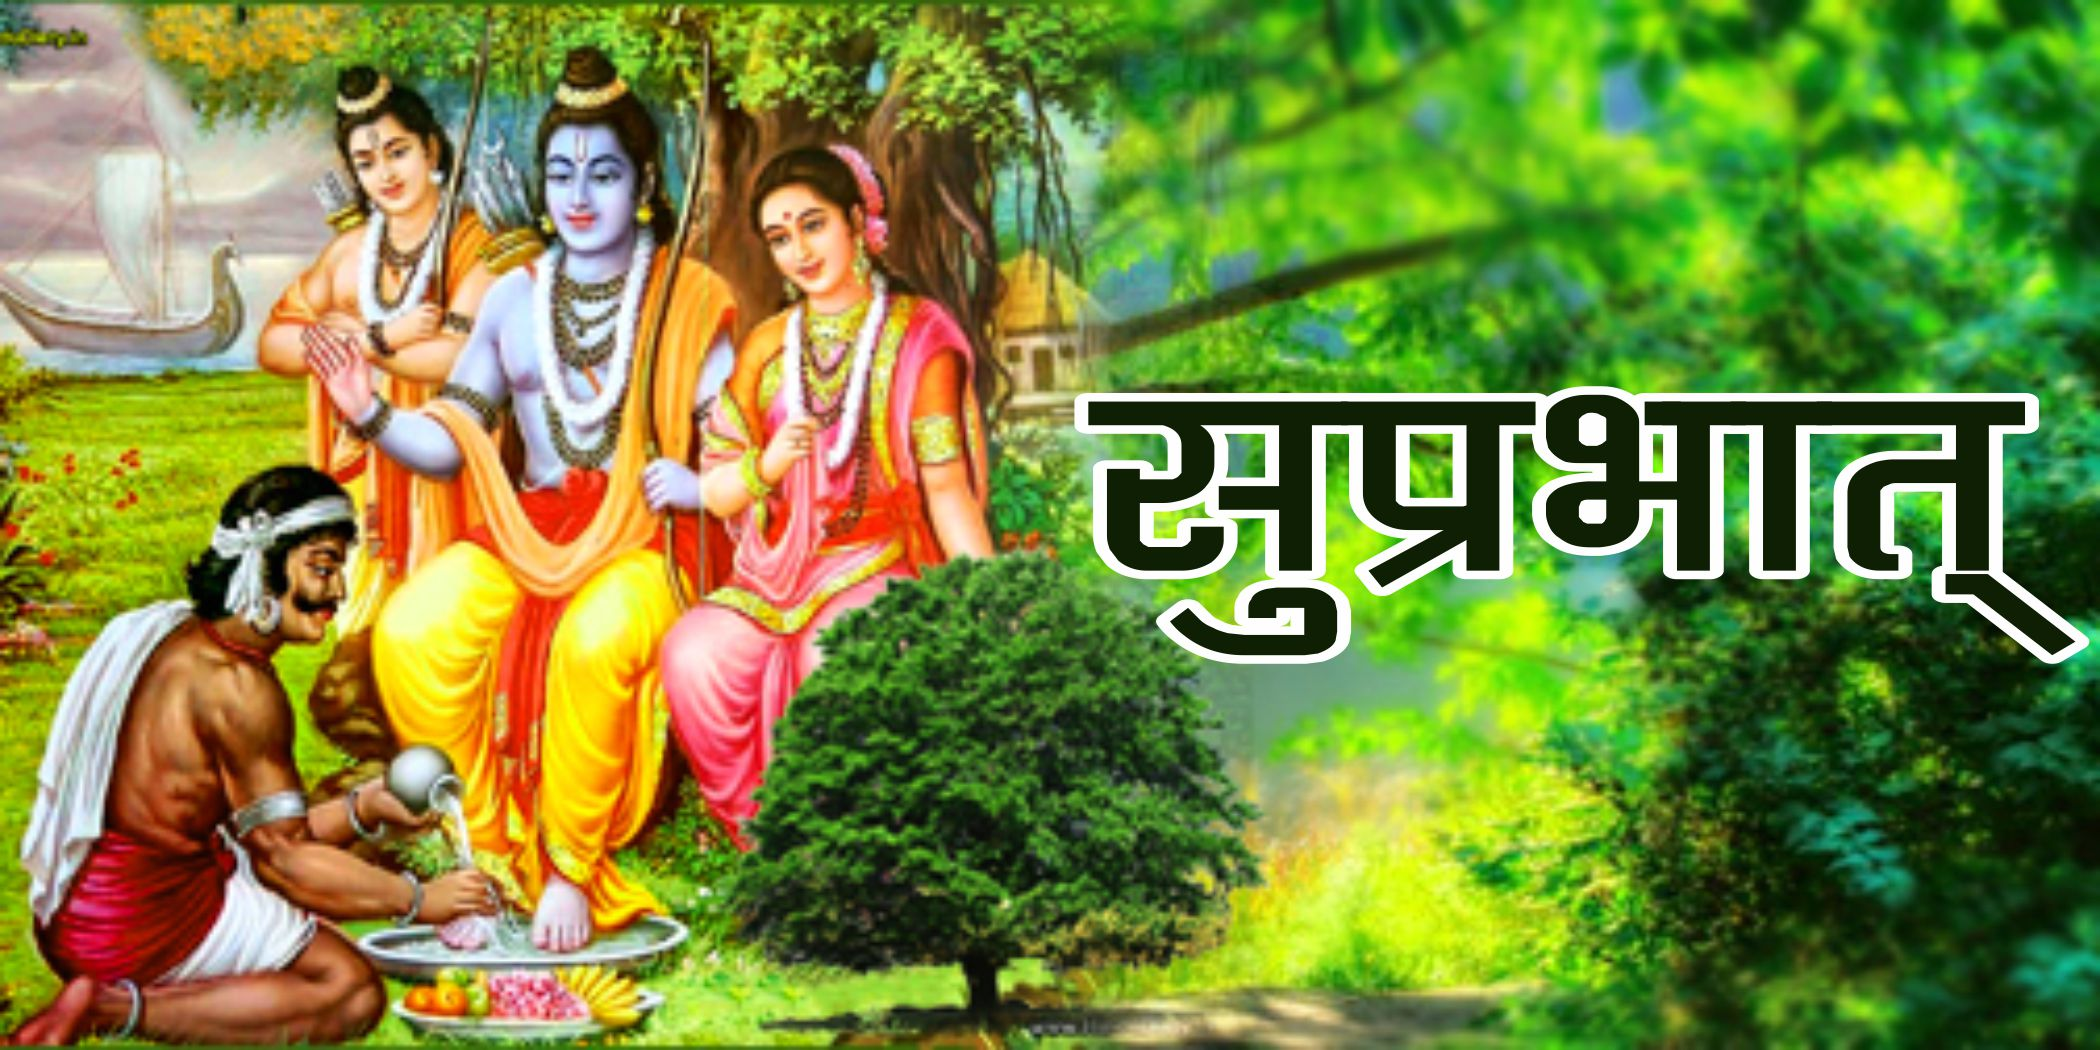 bhagwan shree ram good morning wishes free download images